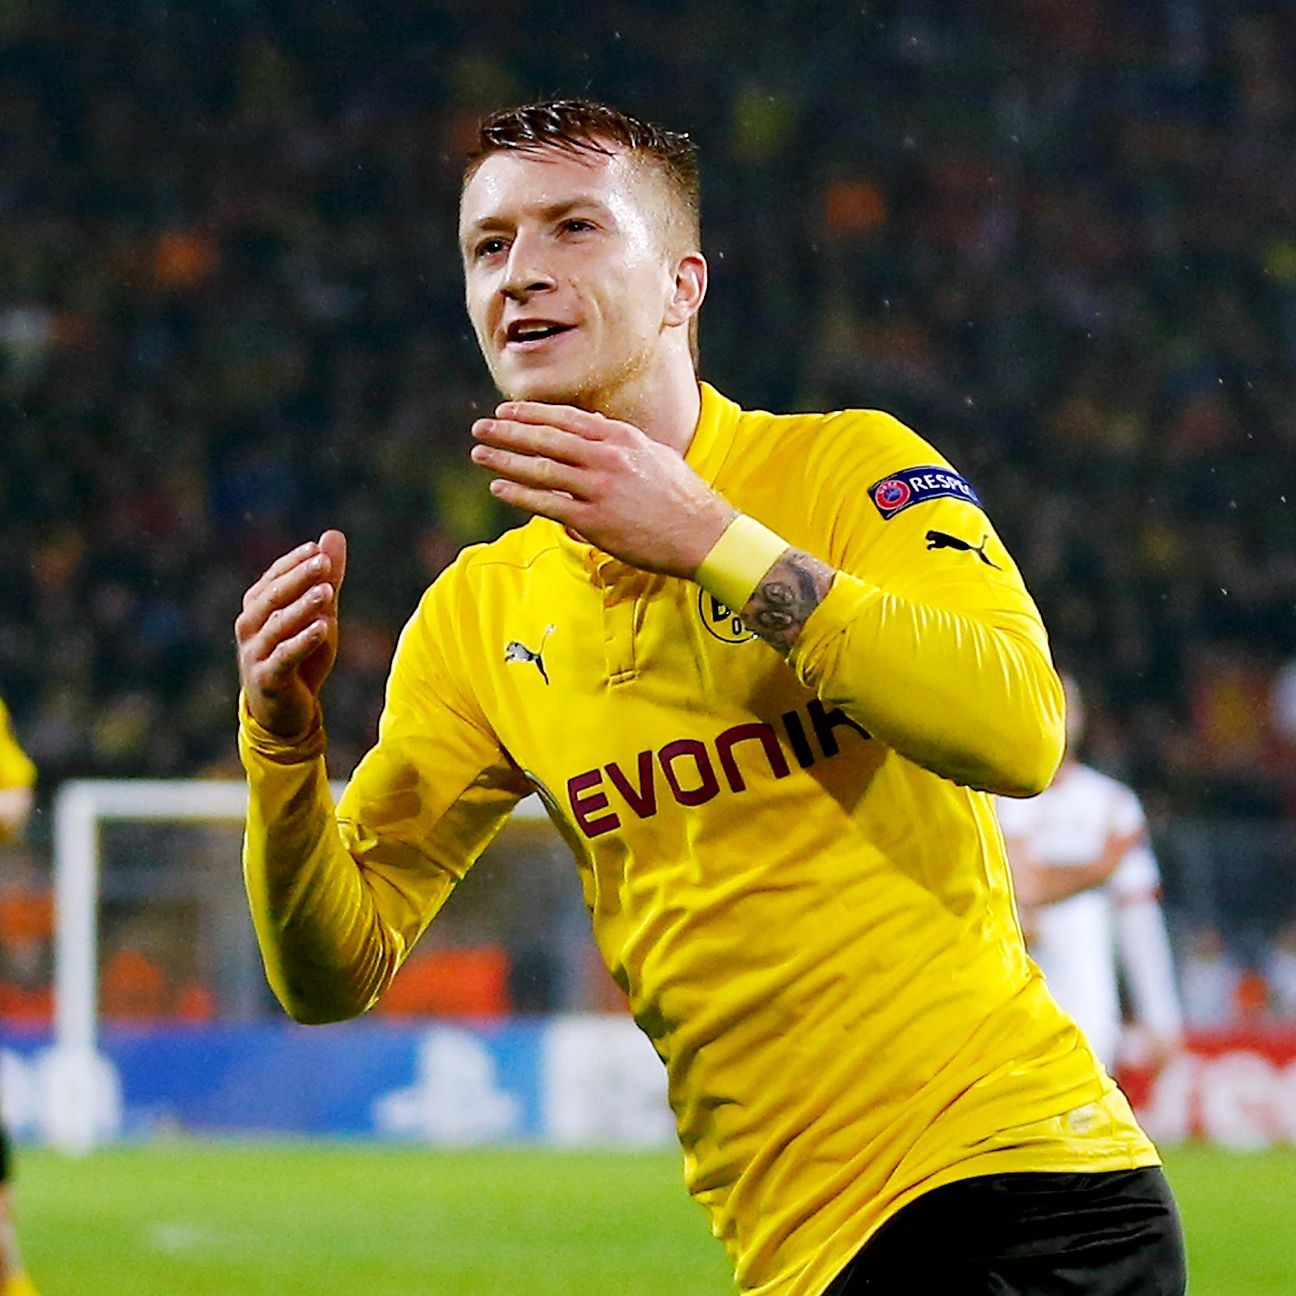 Dortmund fans will be hoping Marco Reus is fit and able to help lift BVB out of their Bundesliga funk.